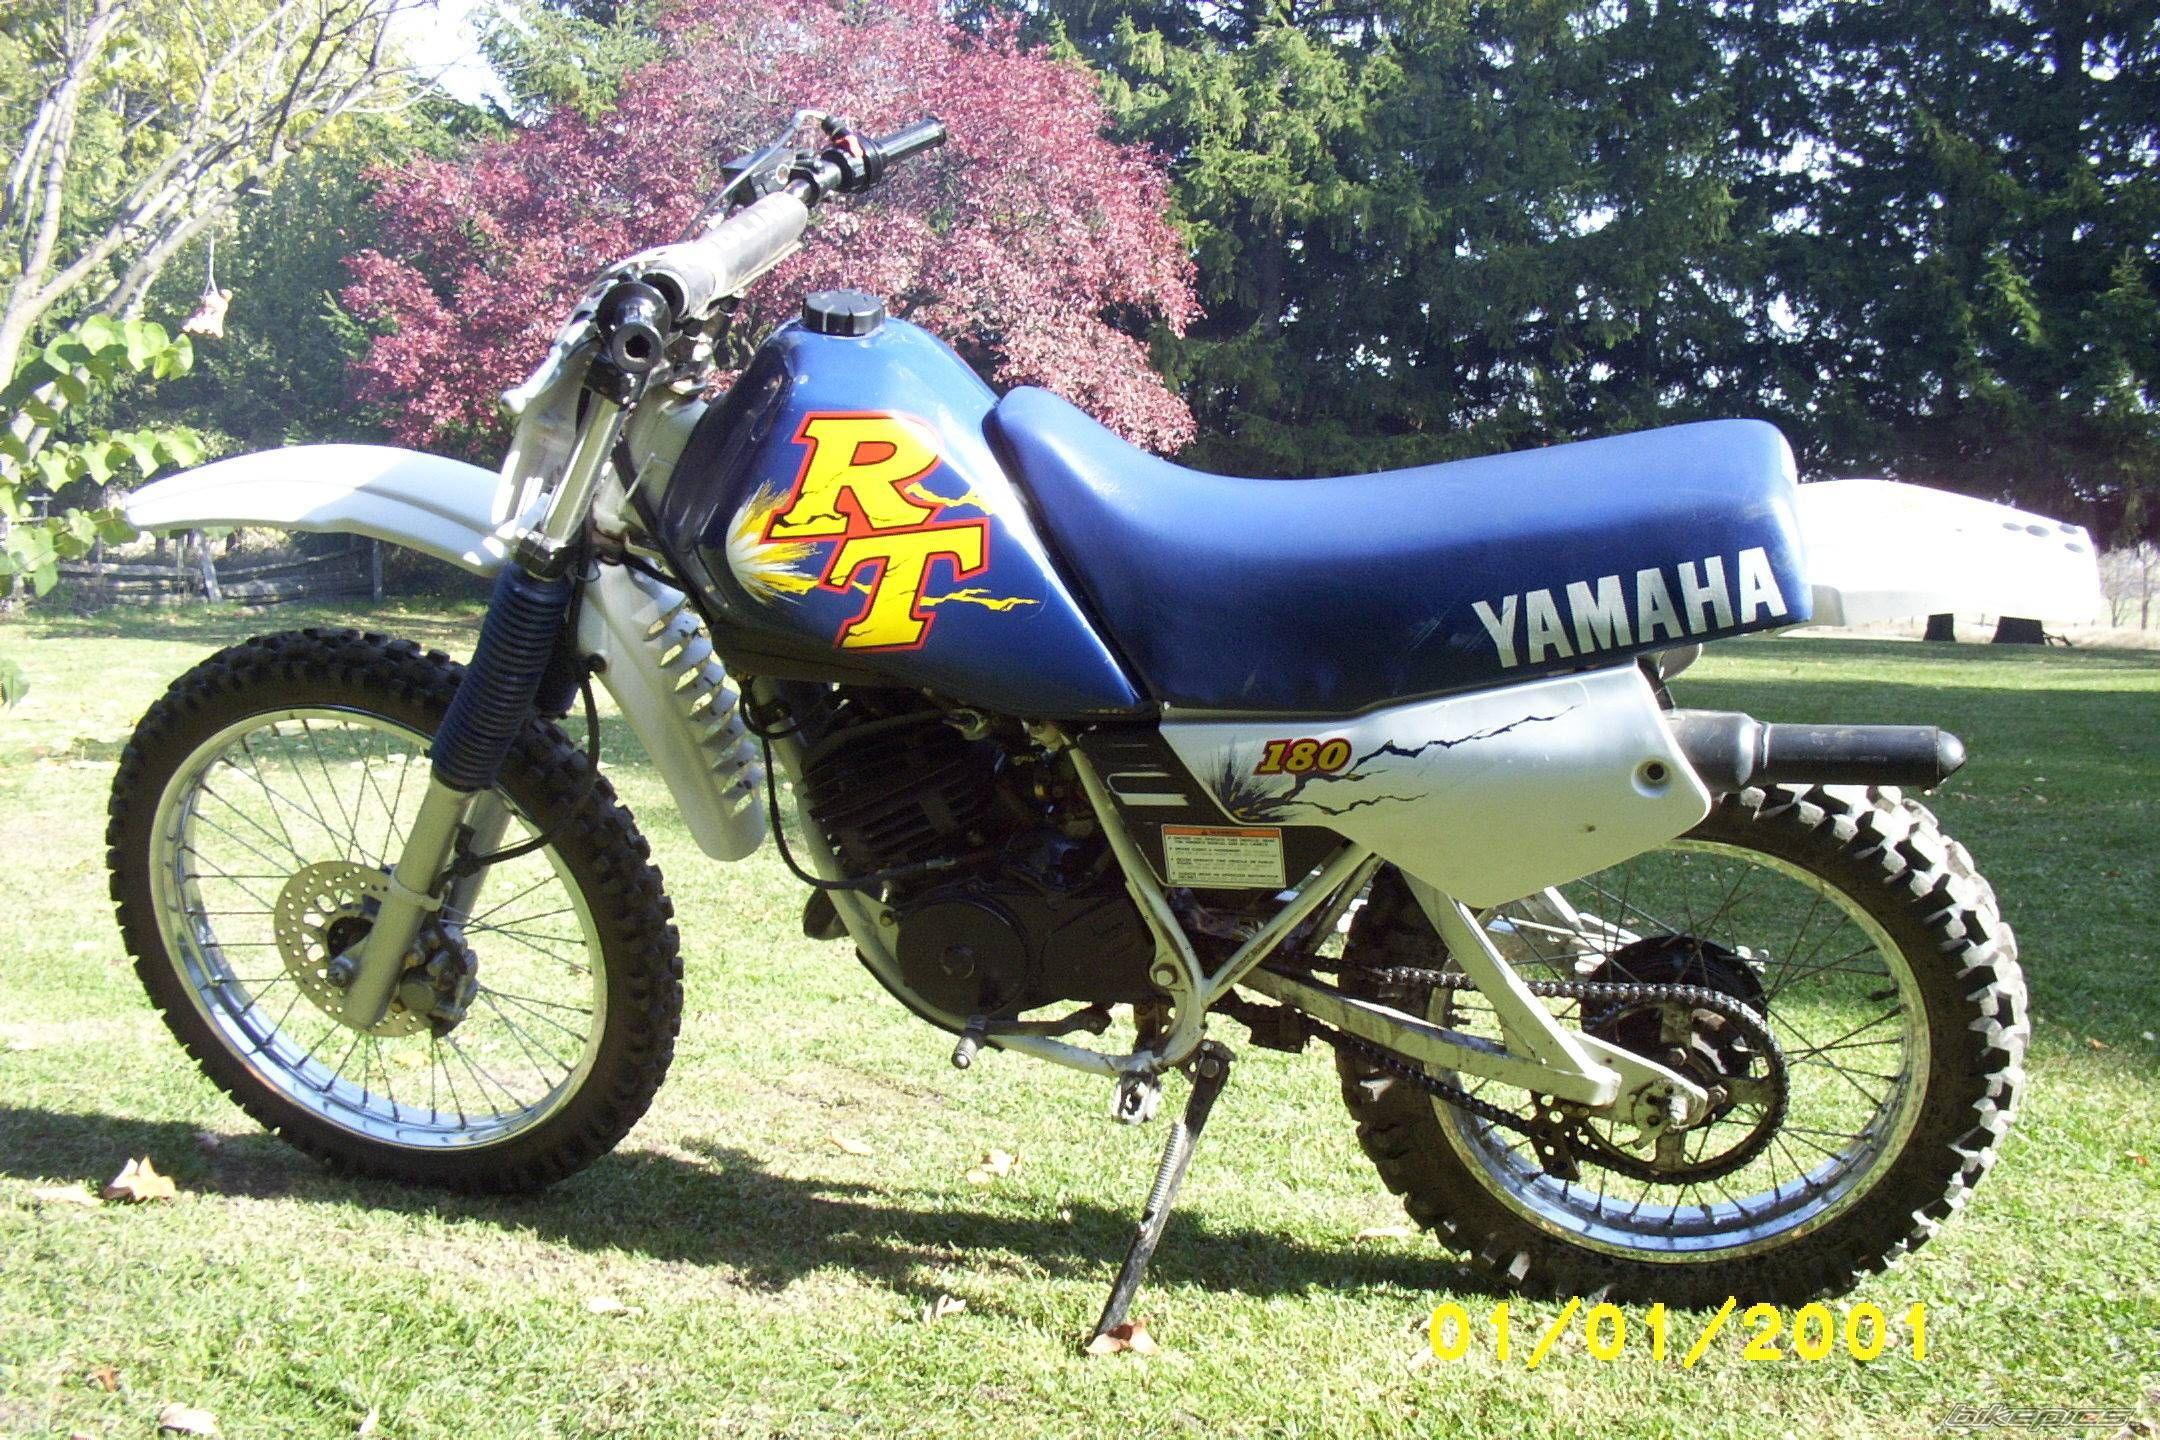 click on image to download 1996 yamaha rt180 service repair rh pinterest com Yamaha Dirt Bike Fuel Filters 1990 Yamaha RT 180 Parts